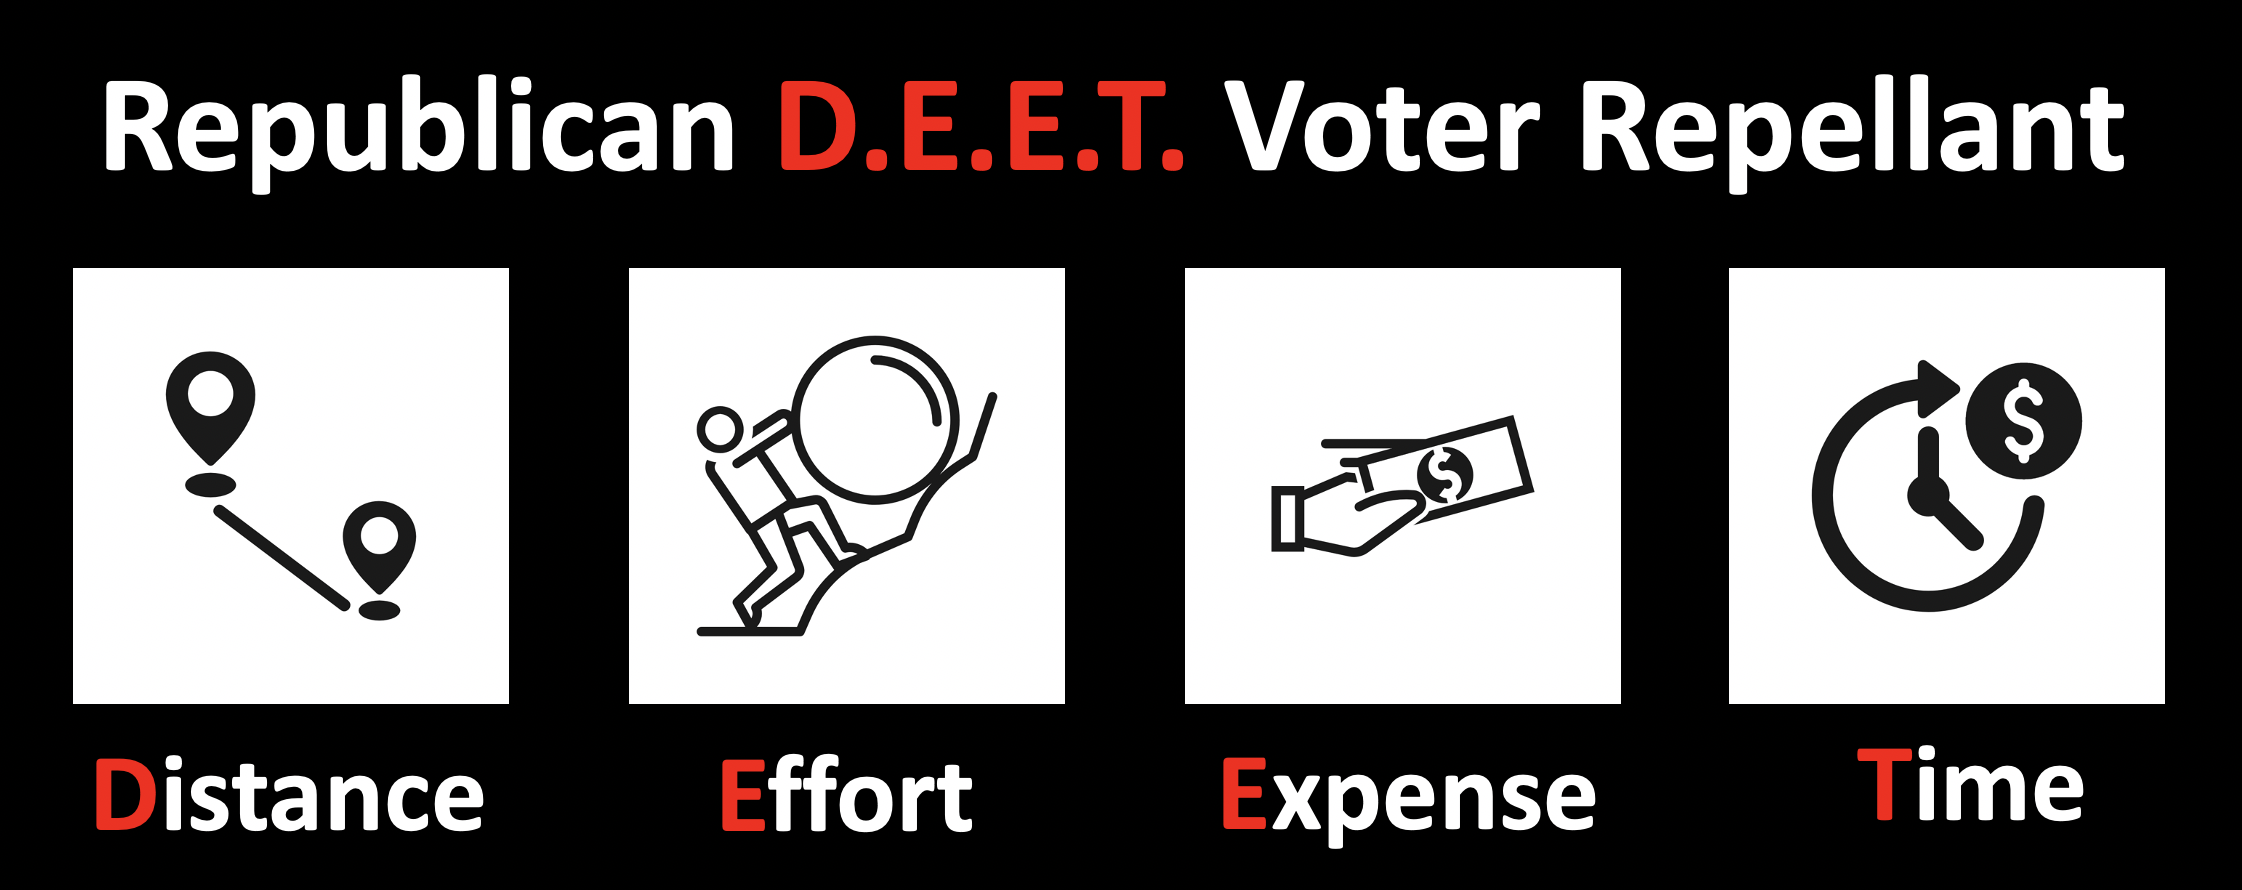 Republican DEET is voter repellant that drives up the cost of voting